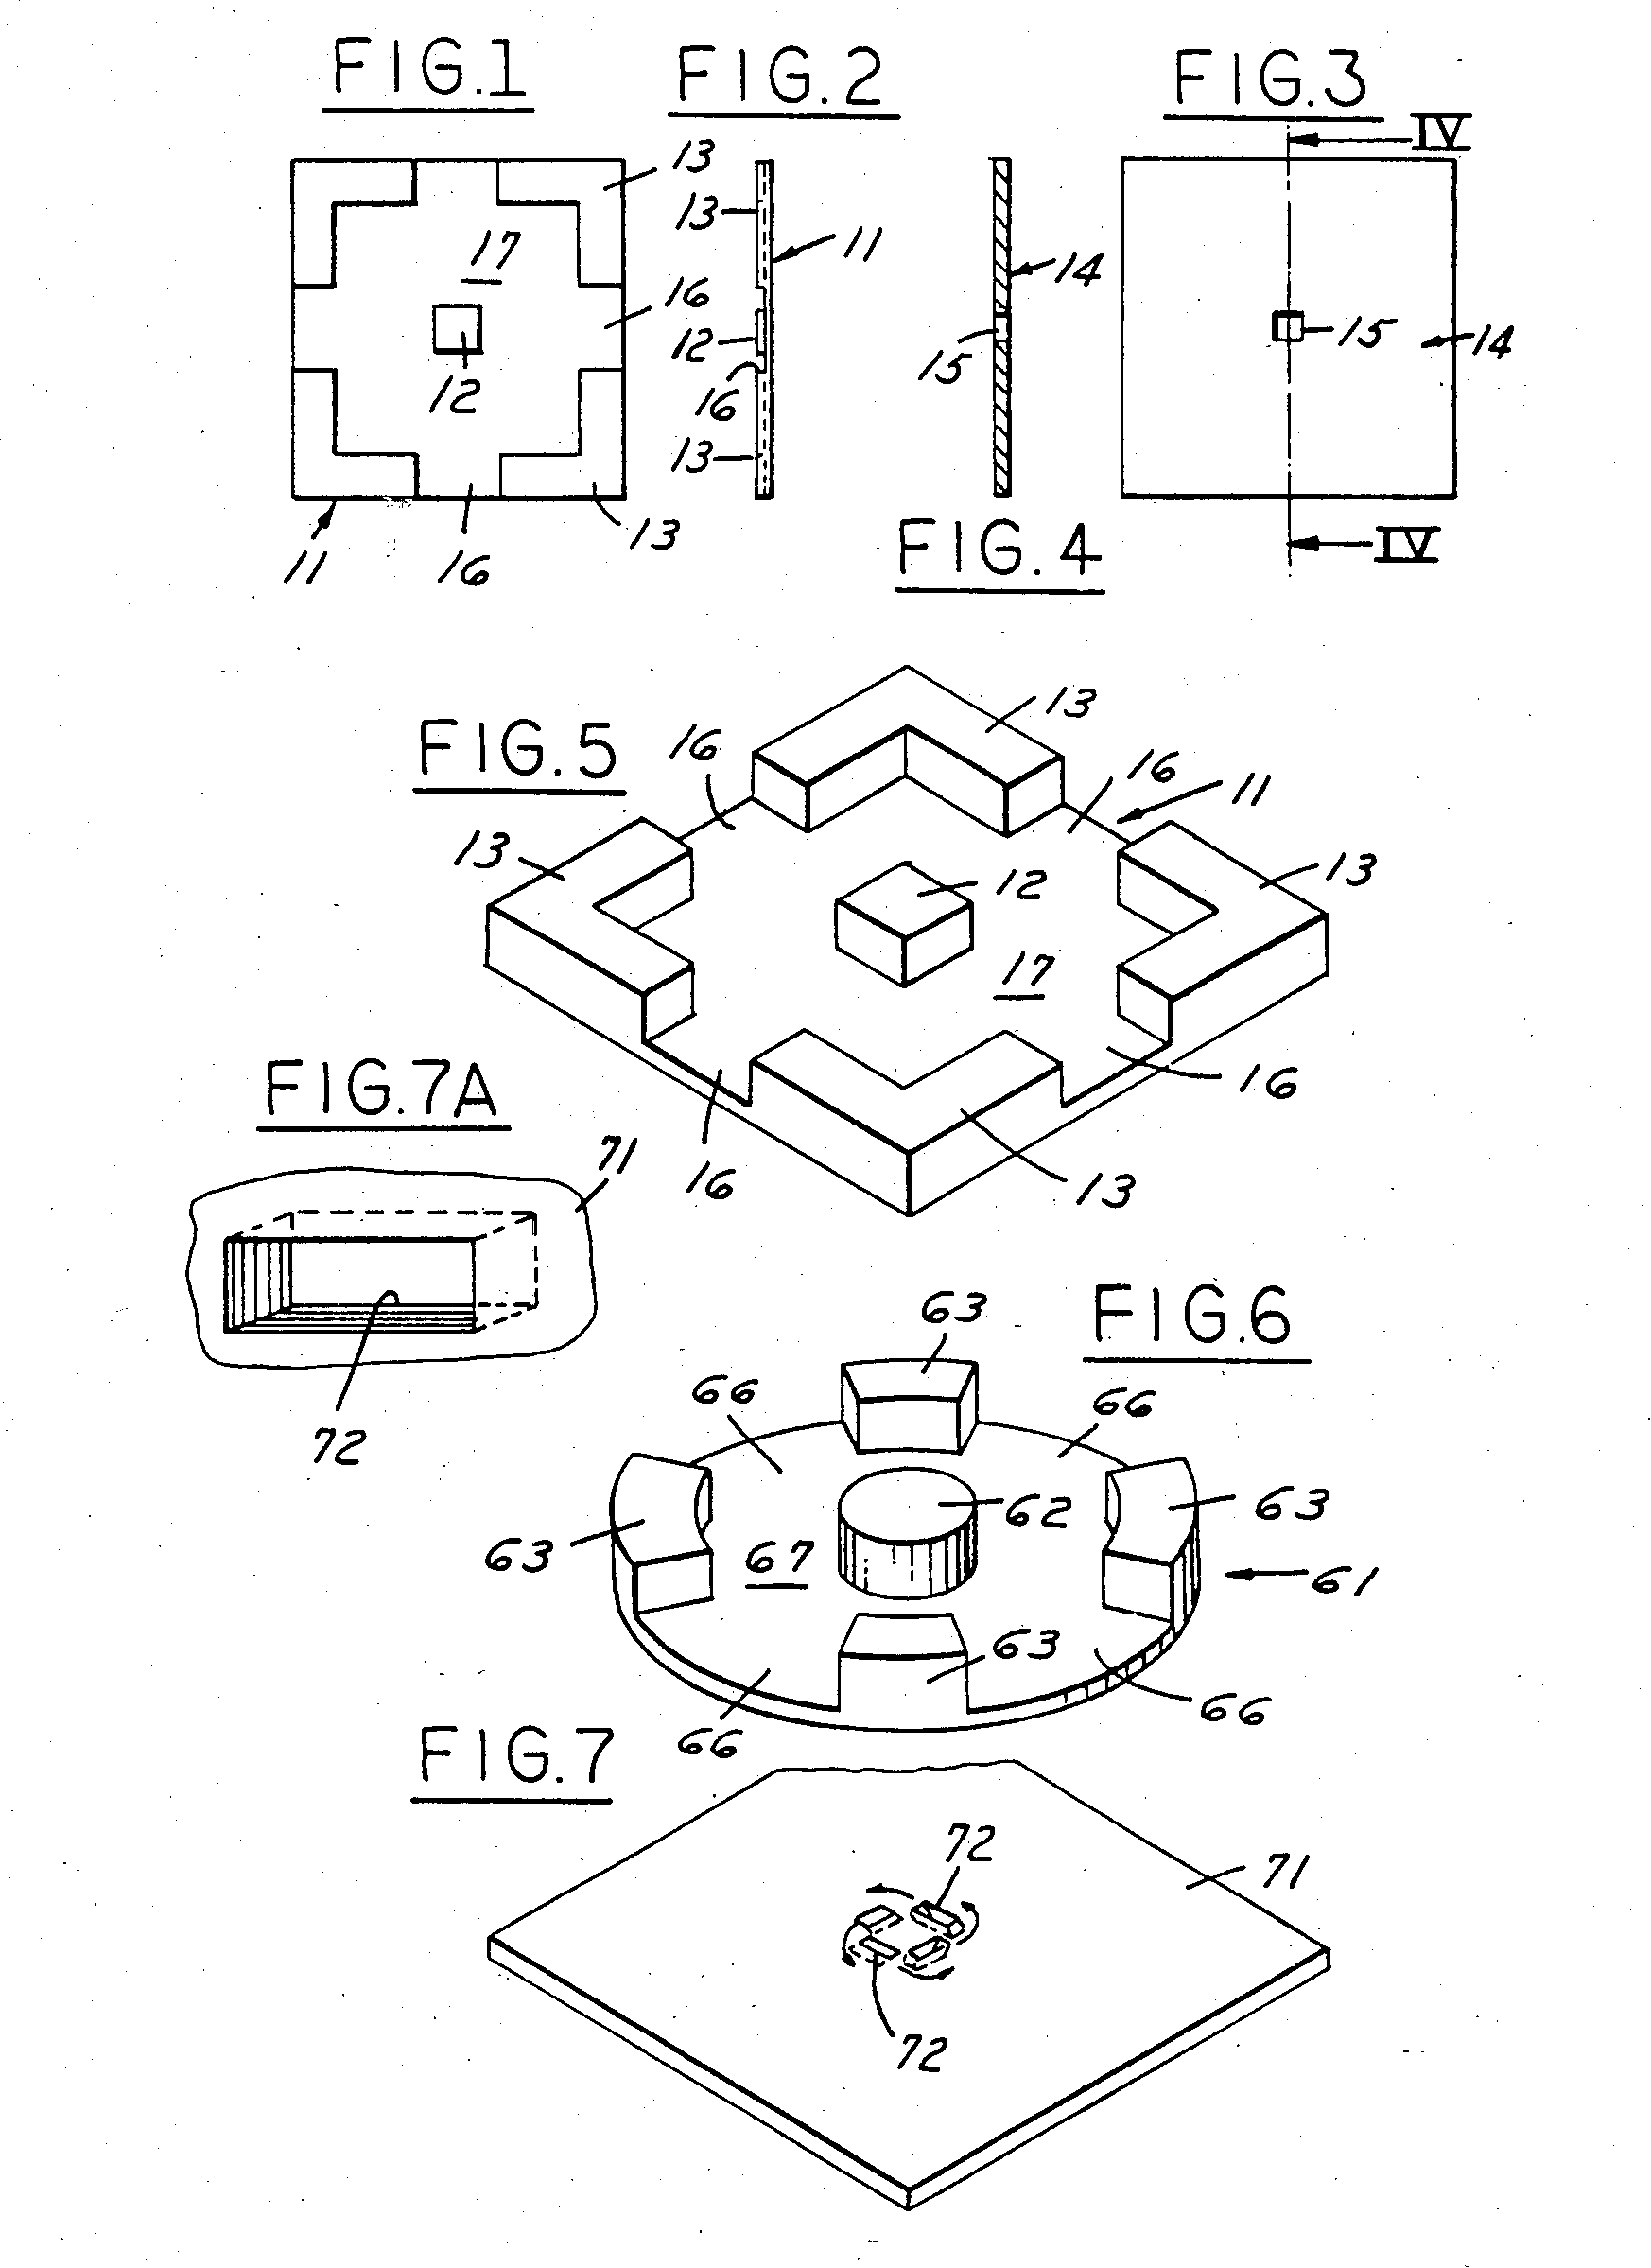 """""""Method for Fabricating a Silicon Valve""""   Patent number 4,628,576    Filing date: Sep 9,1985, Issue date: Dec 16, 1986 Inventors Joseph M. Giachino, James W. Kress"""